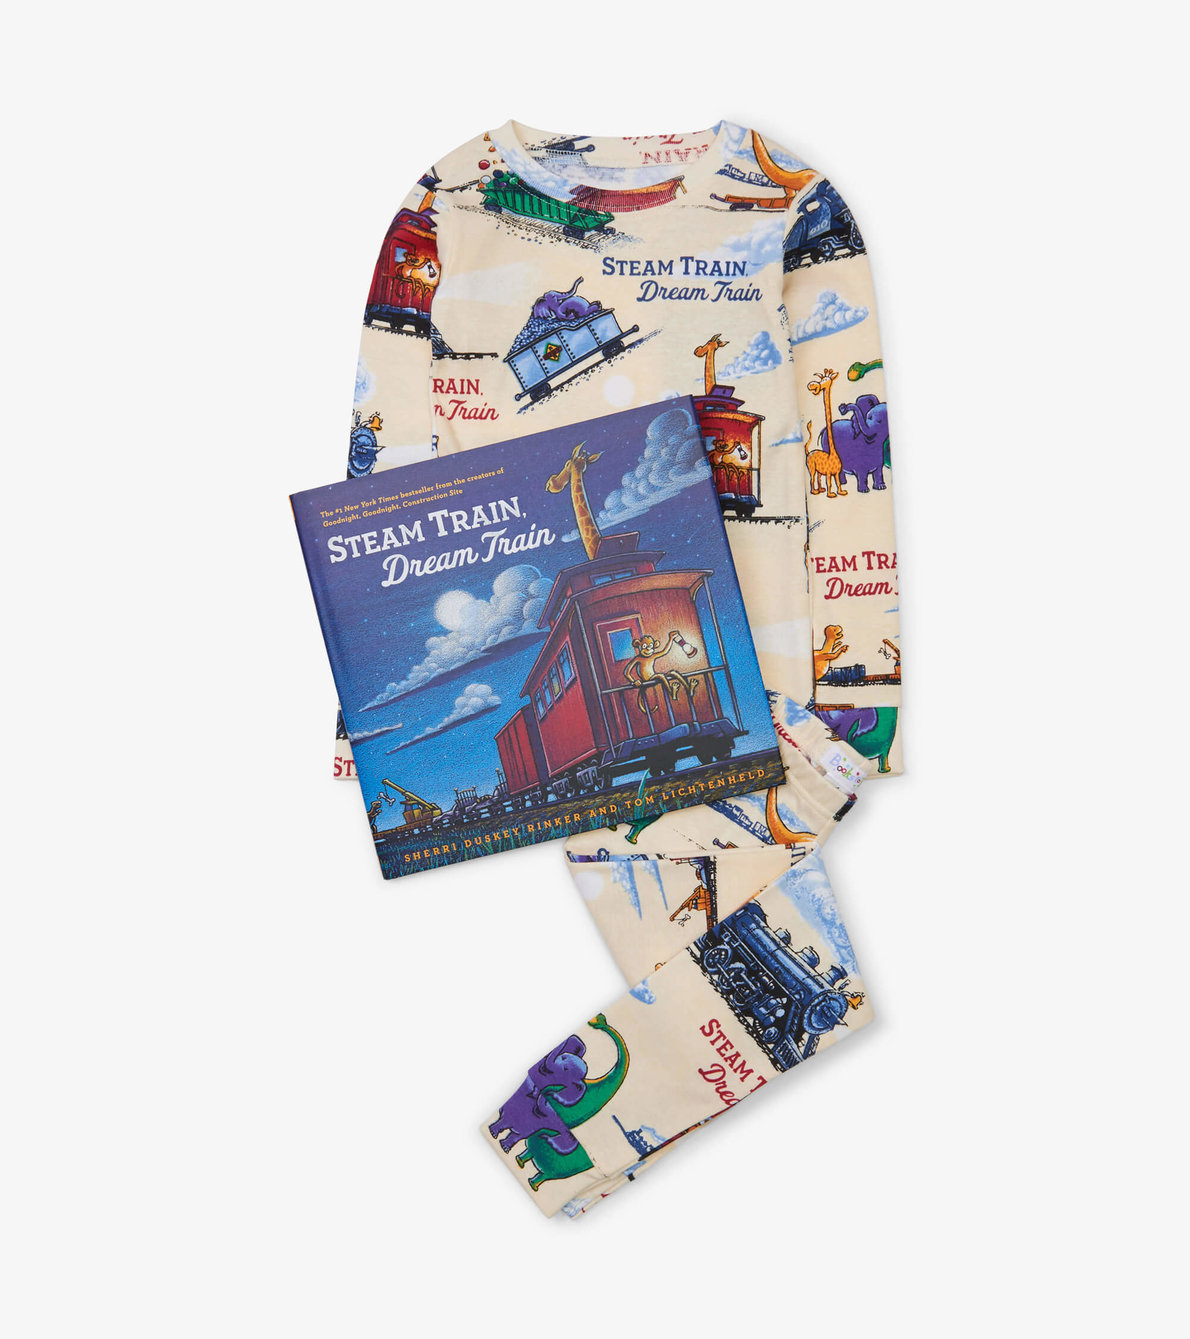 View larger image of Steam Train, Dream Train Book and Pajama Set